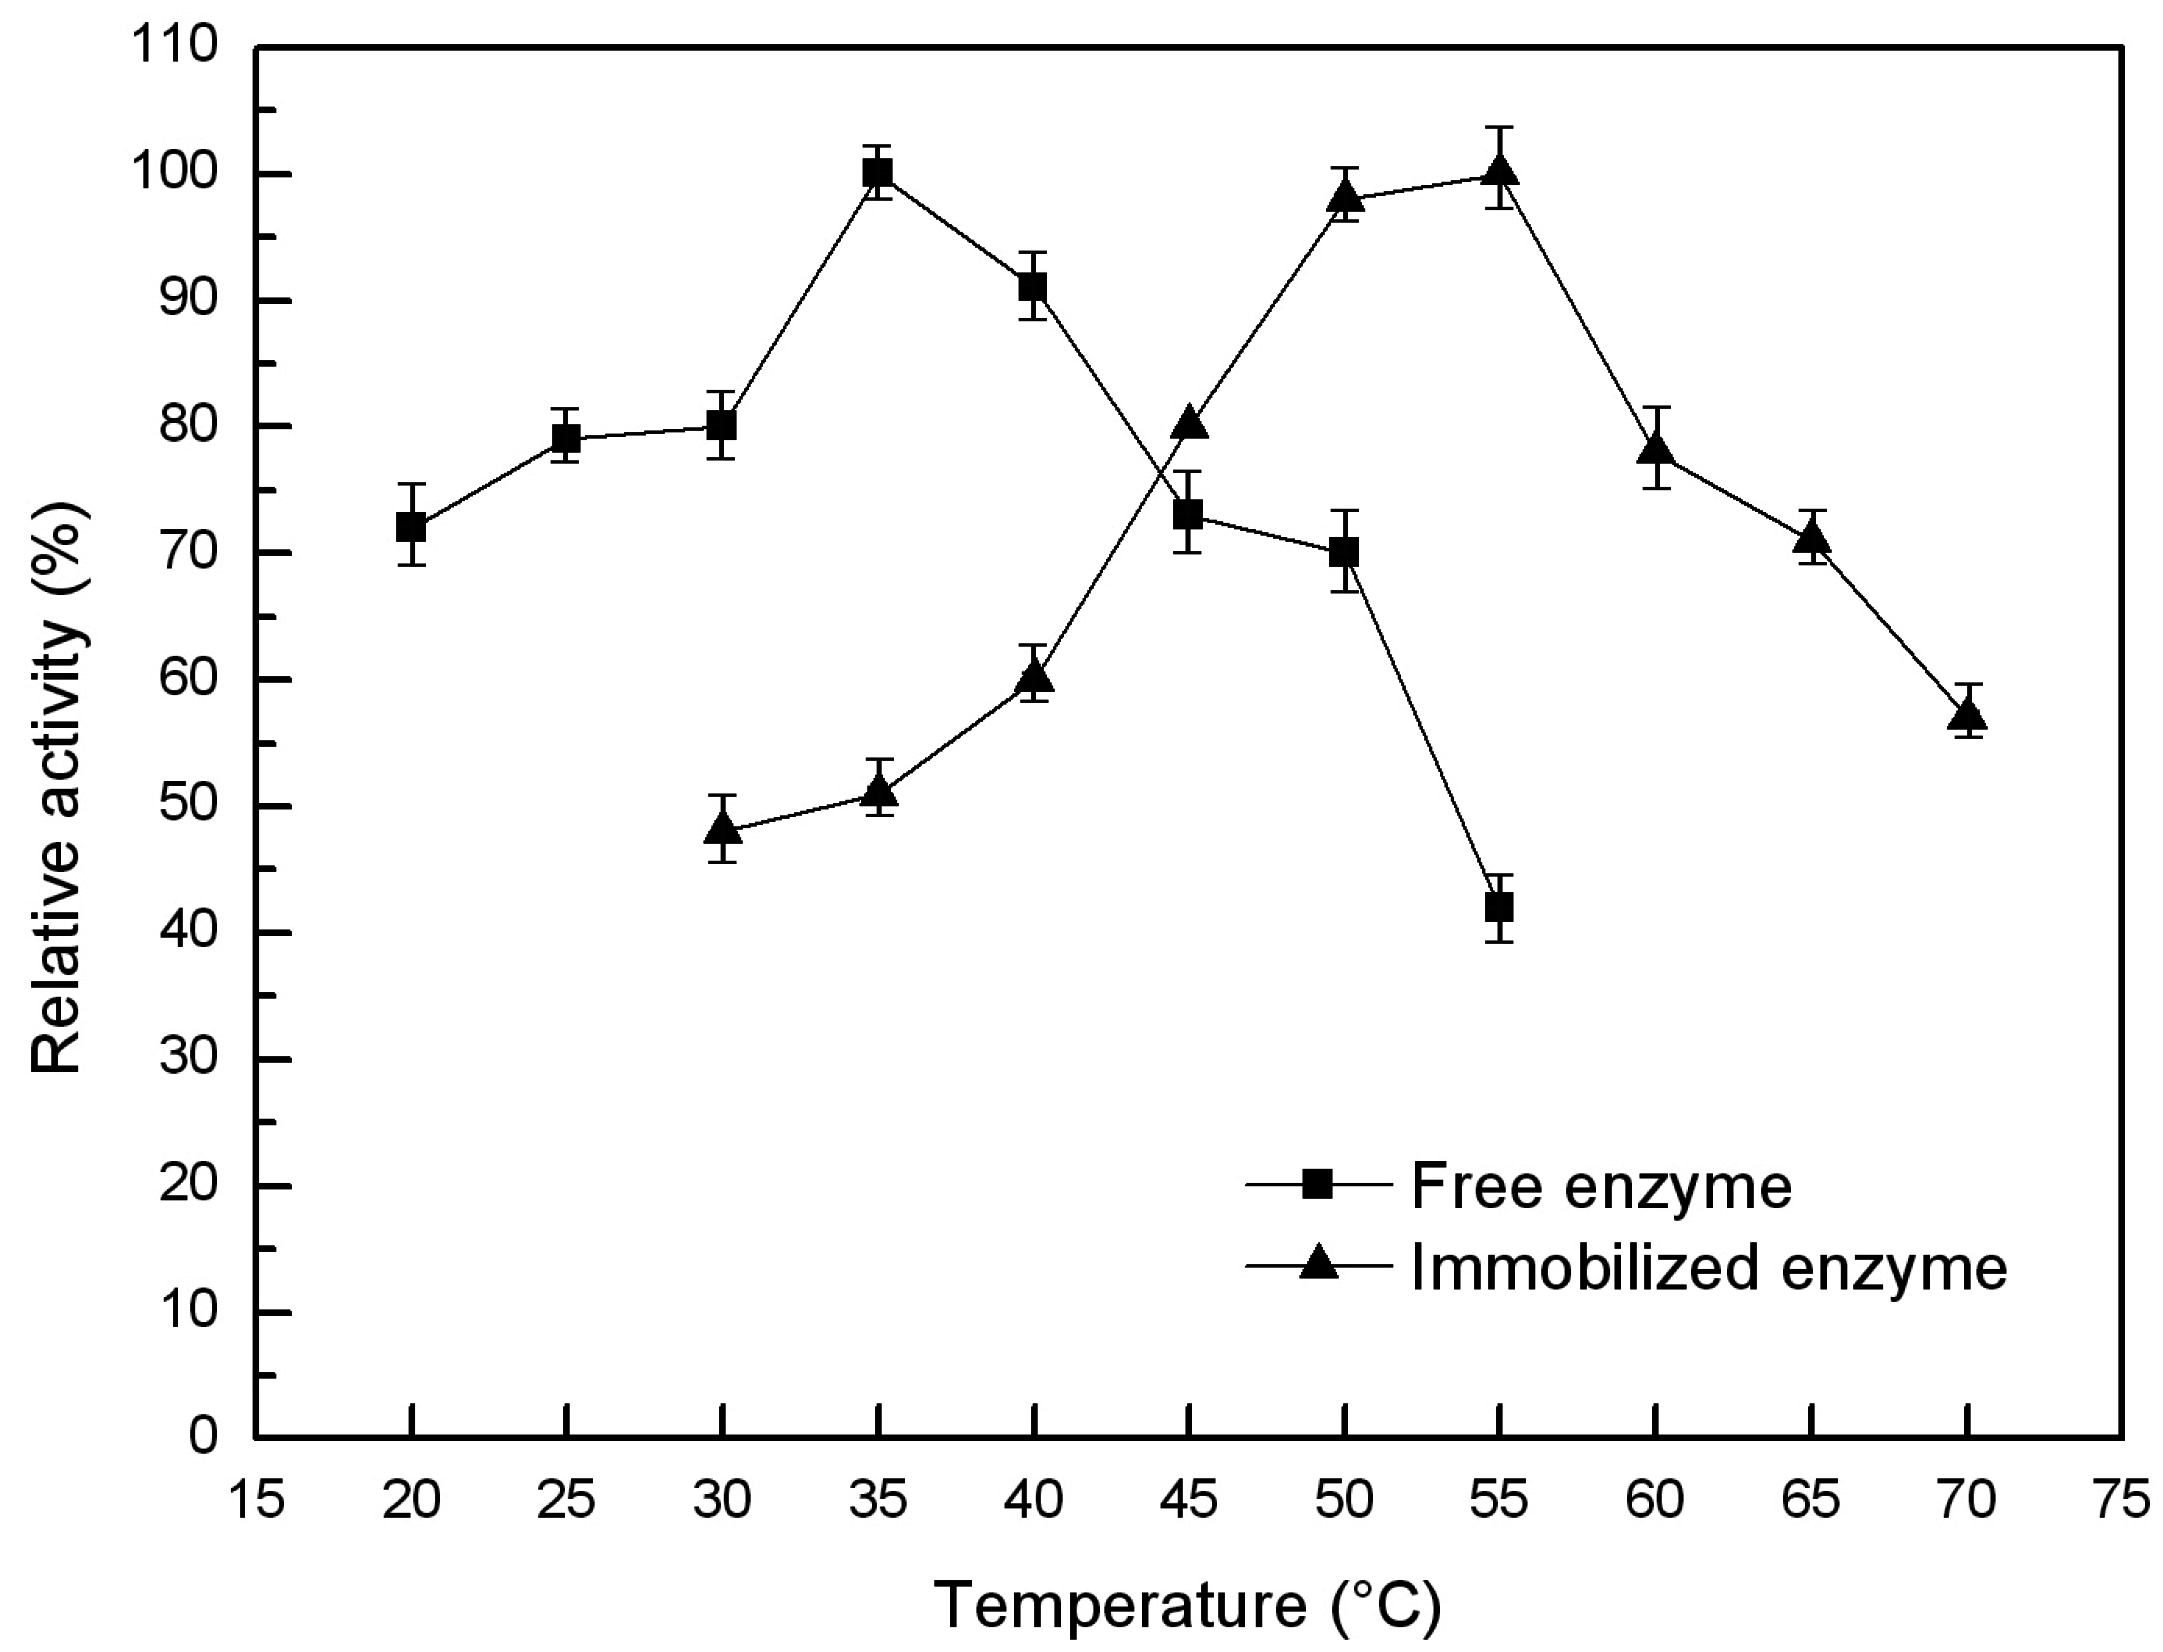 what is the optimum temperature for lipase